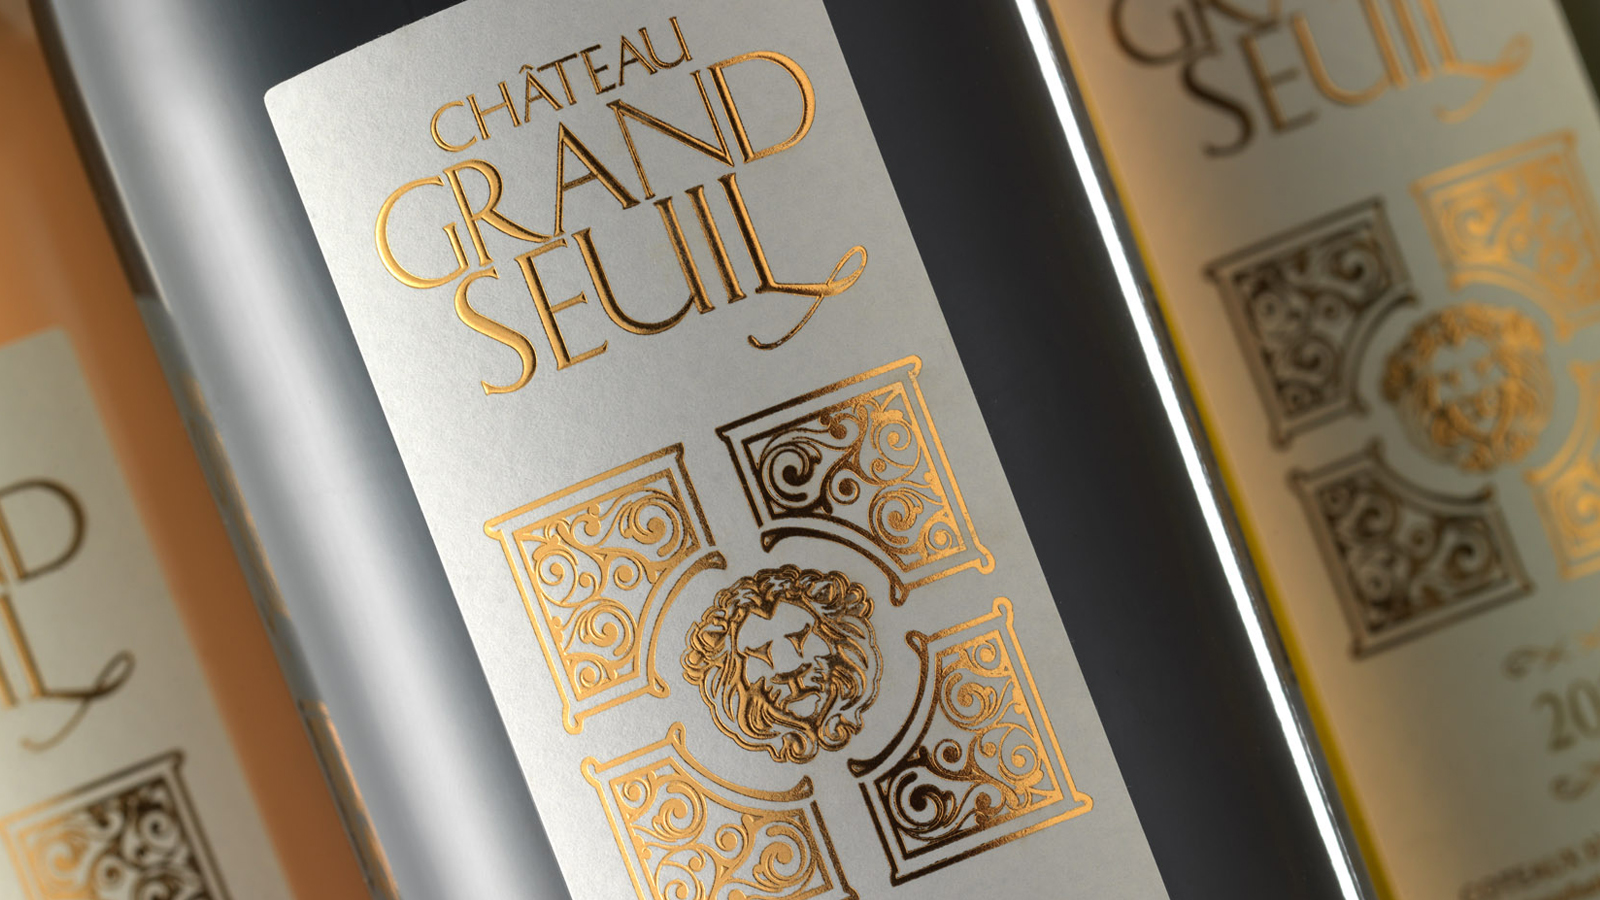 2-2S_chateau du seuil-Design-global.jpg